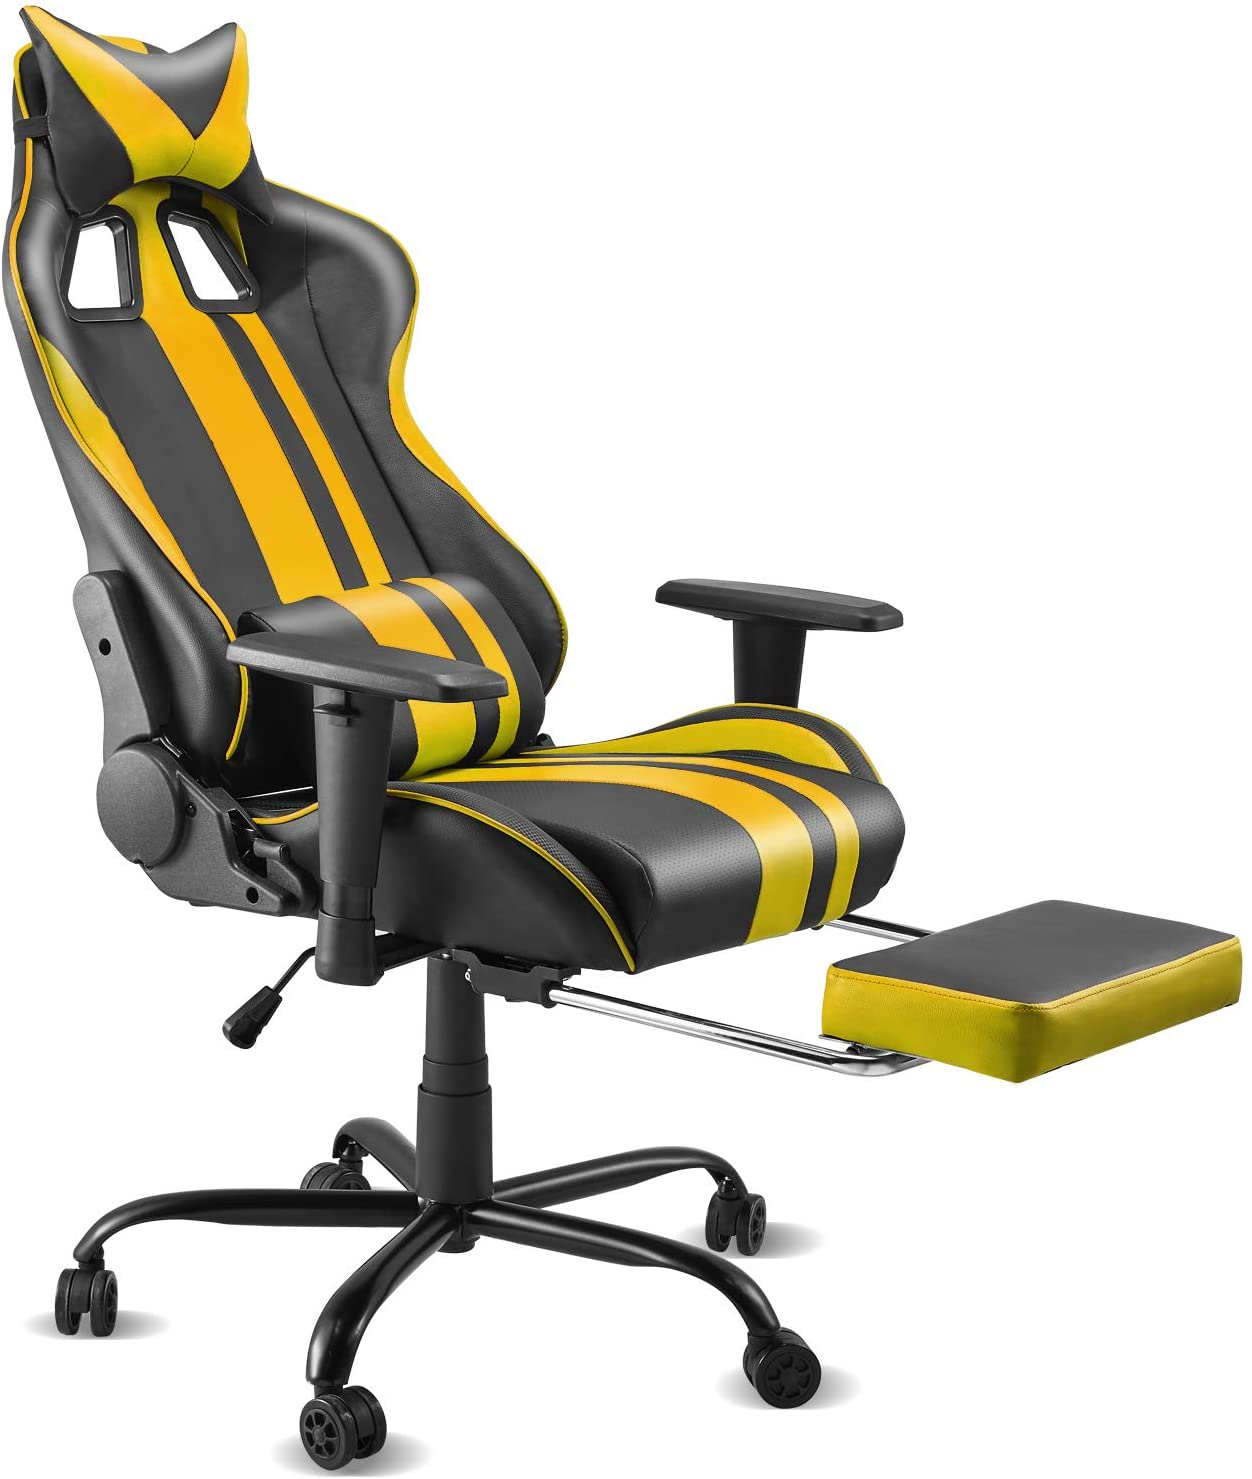 Soontrans High-Back Gaming Chair for E-Sports Swivel Gamer Chair Ergonomic Computer Chair PU Leather Home Office Chair with Height Adjustment, Retractable Footrest,Headrest and Lumbar(Black/Yellow)